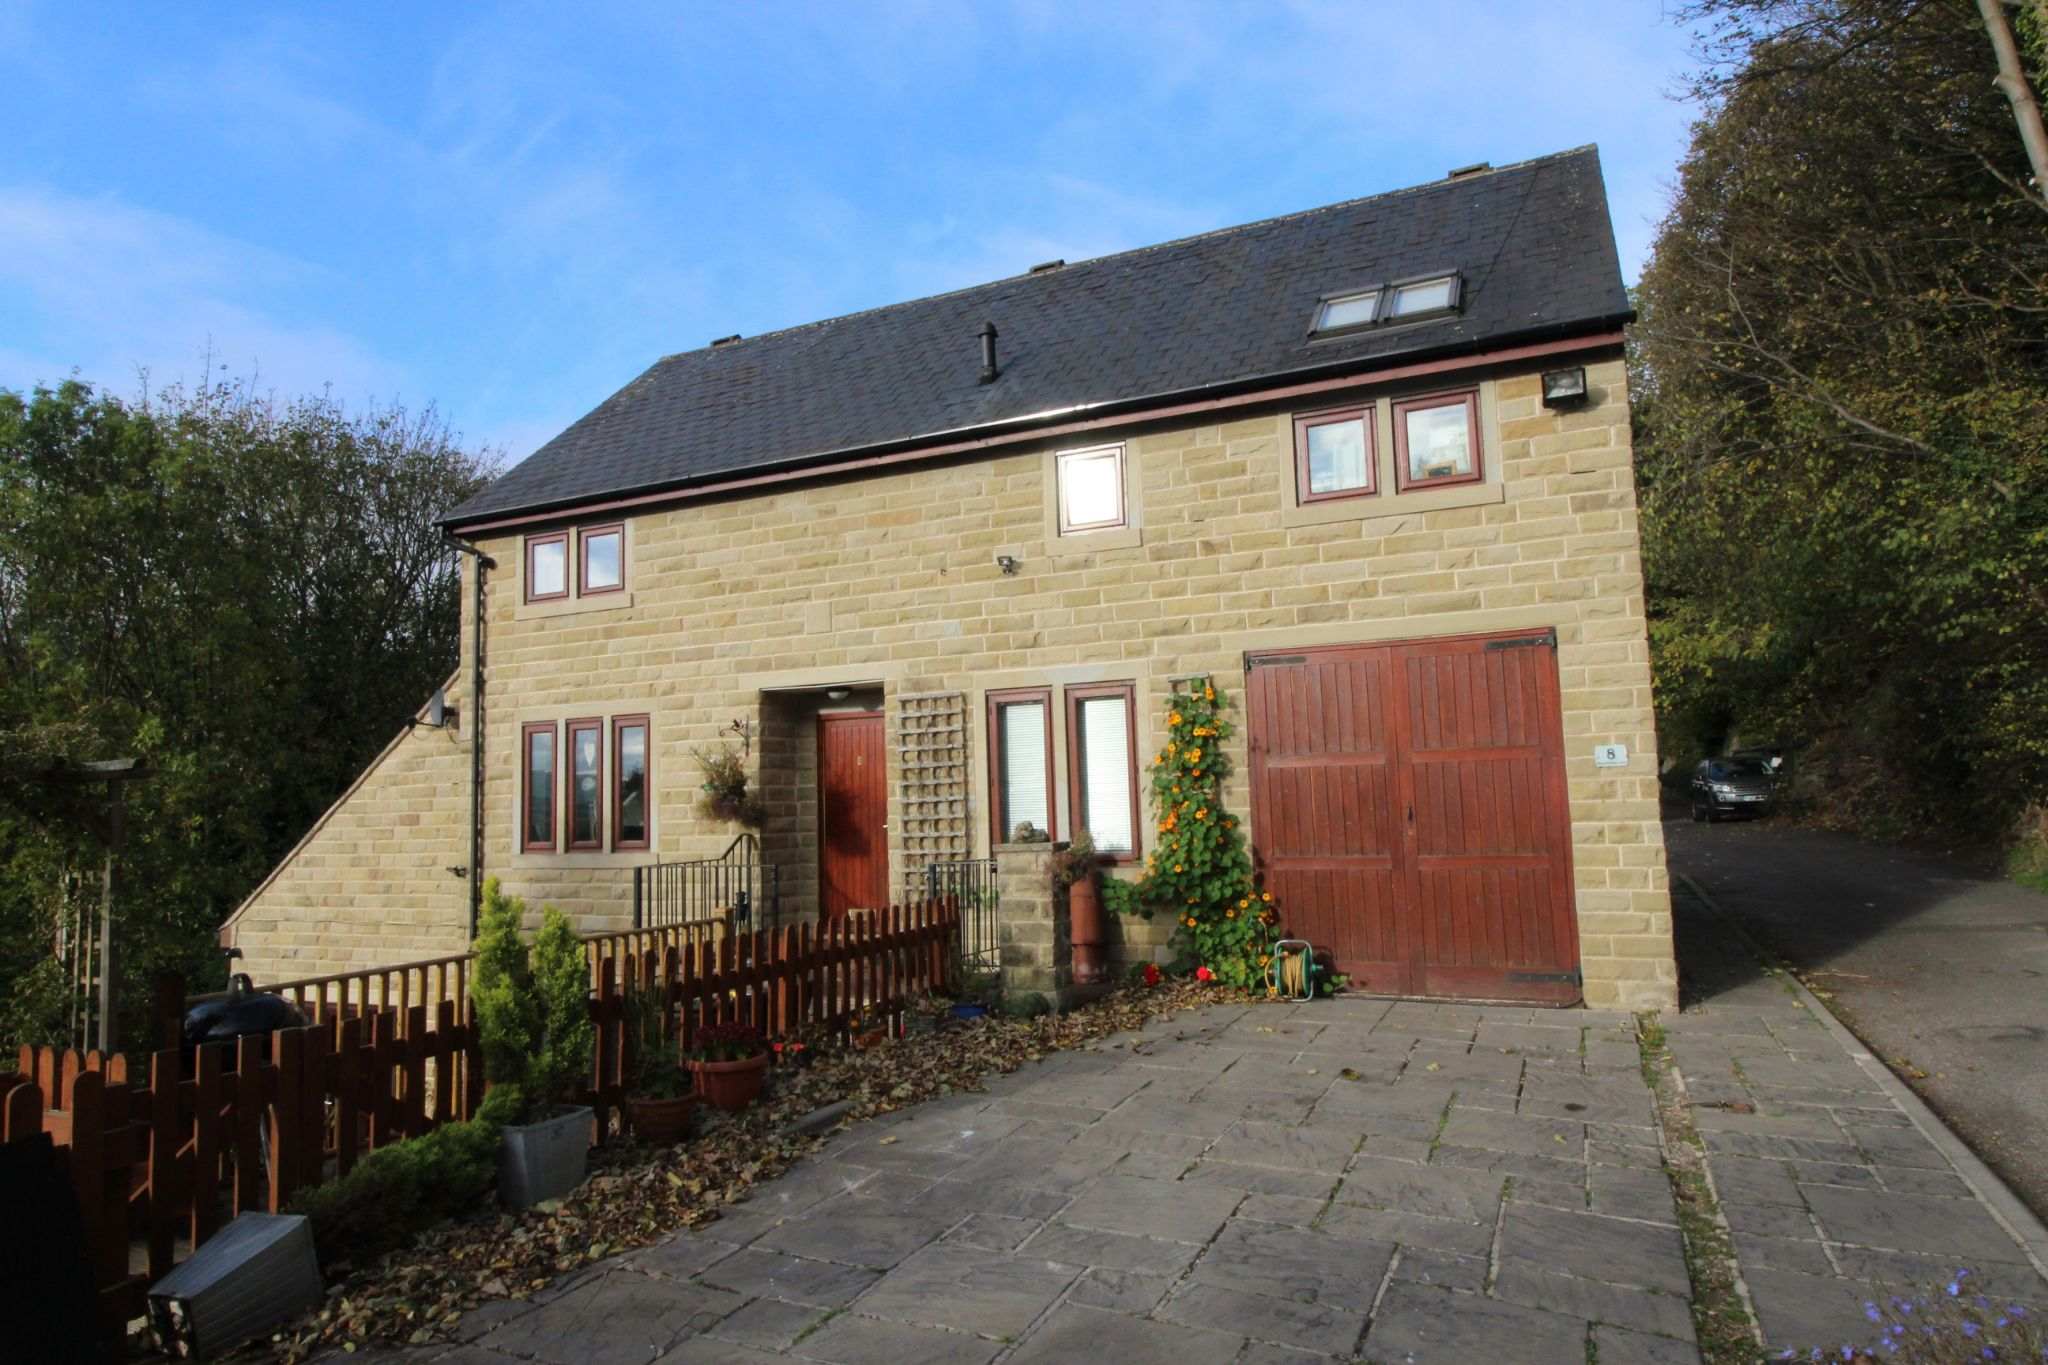 3 bedroom detached house Let in Brighouse - Front elevation